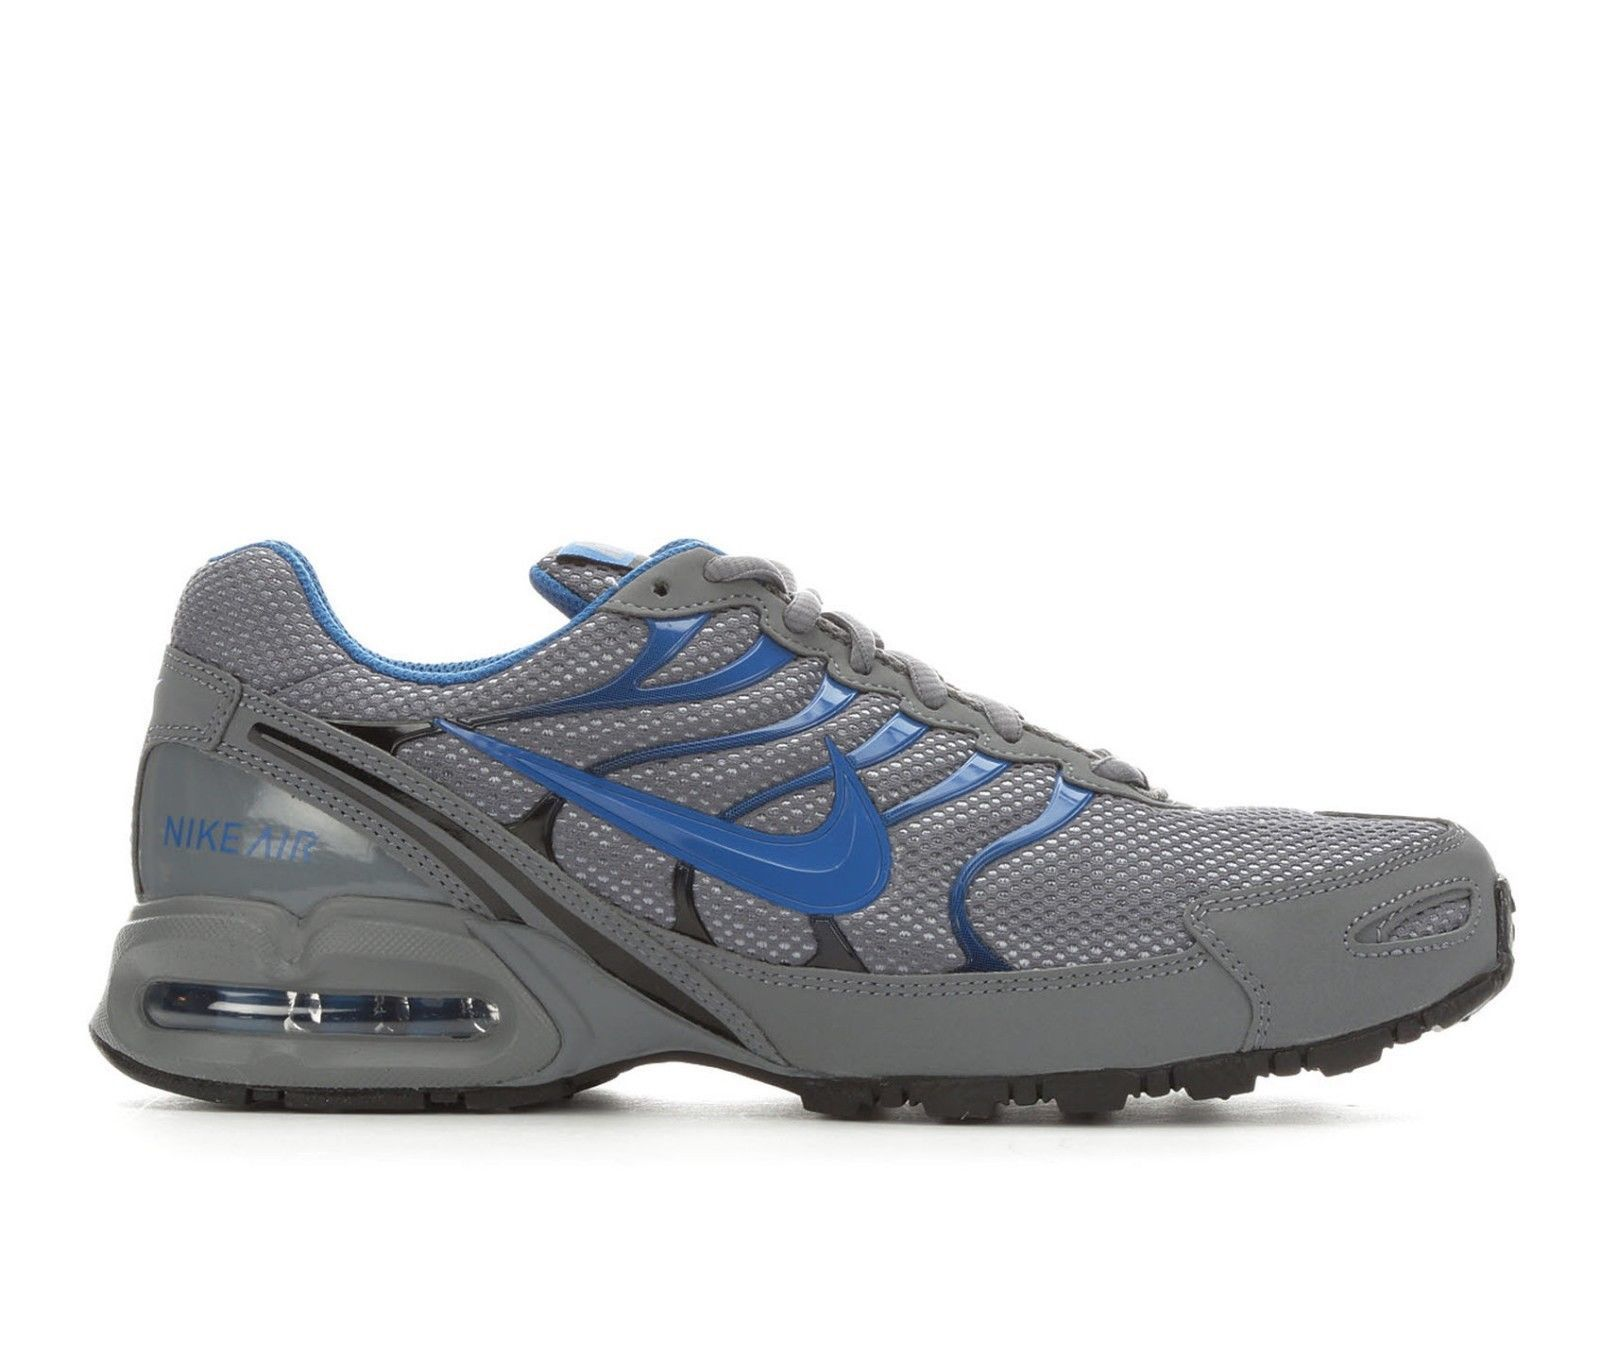 low priced efd9f 7113d ... best price abordable nouvelbaskets de nouvelbaskets abordable nike air  max torche 4 hommes et 5 articsimilaires